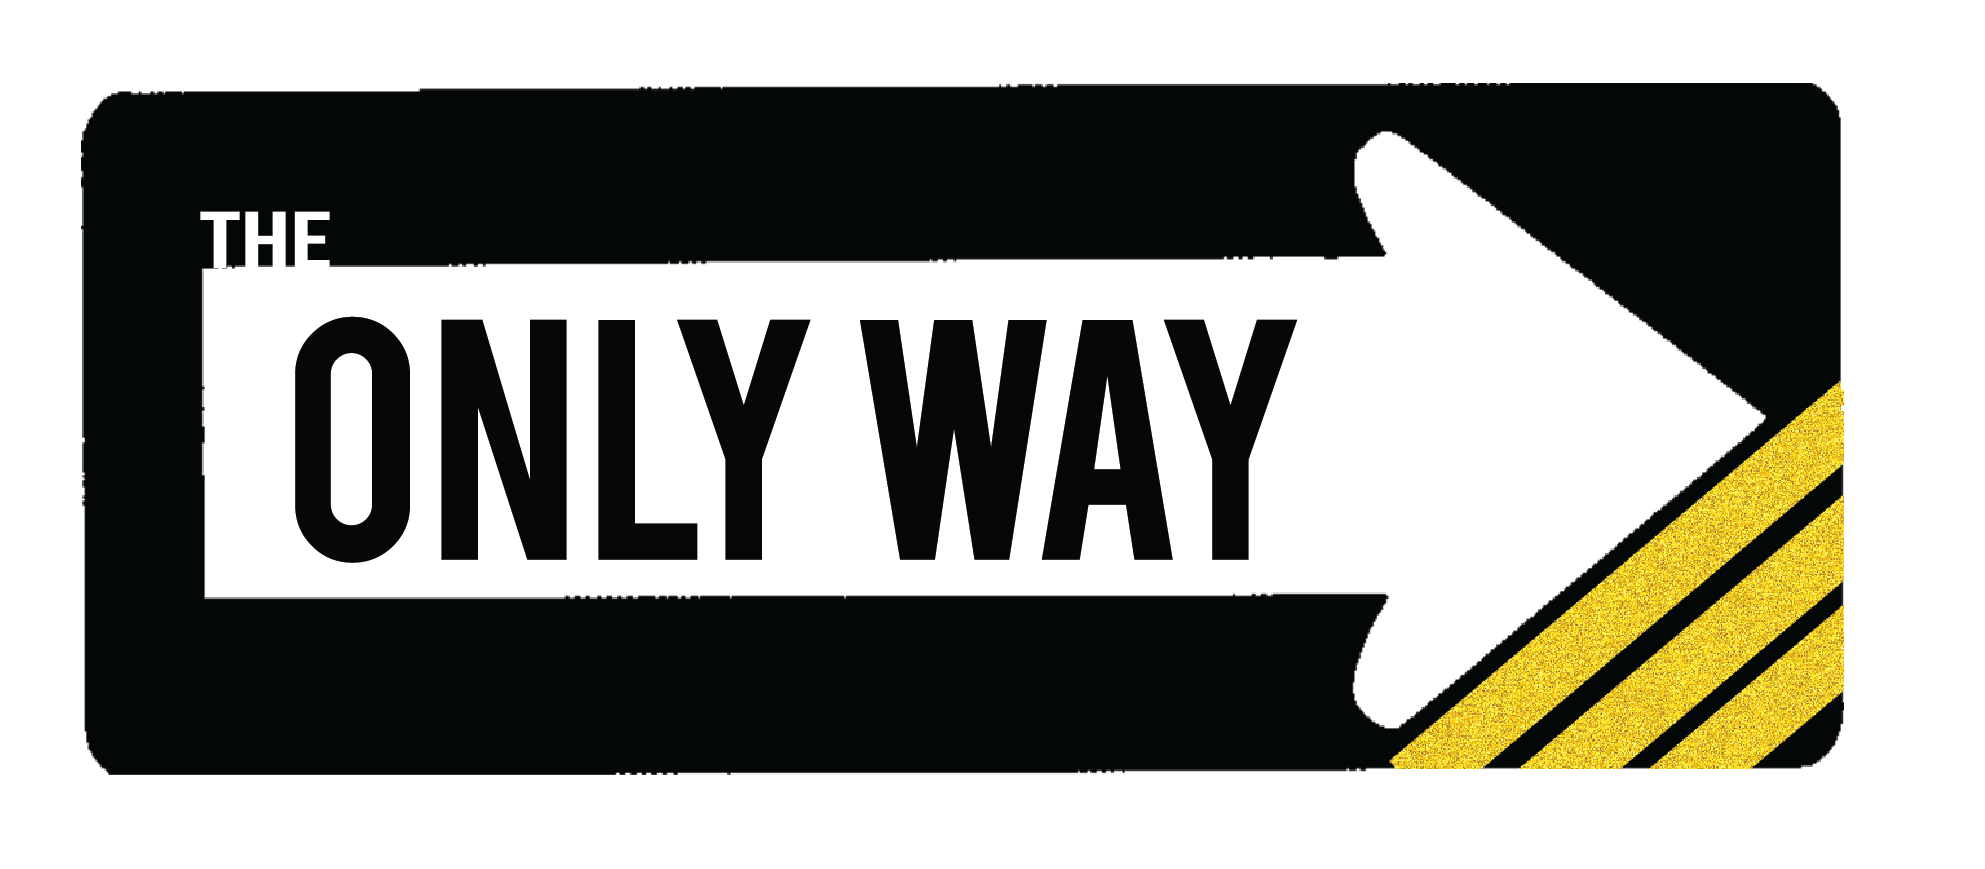 The only way logo